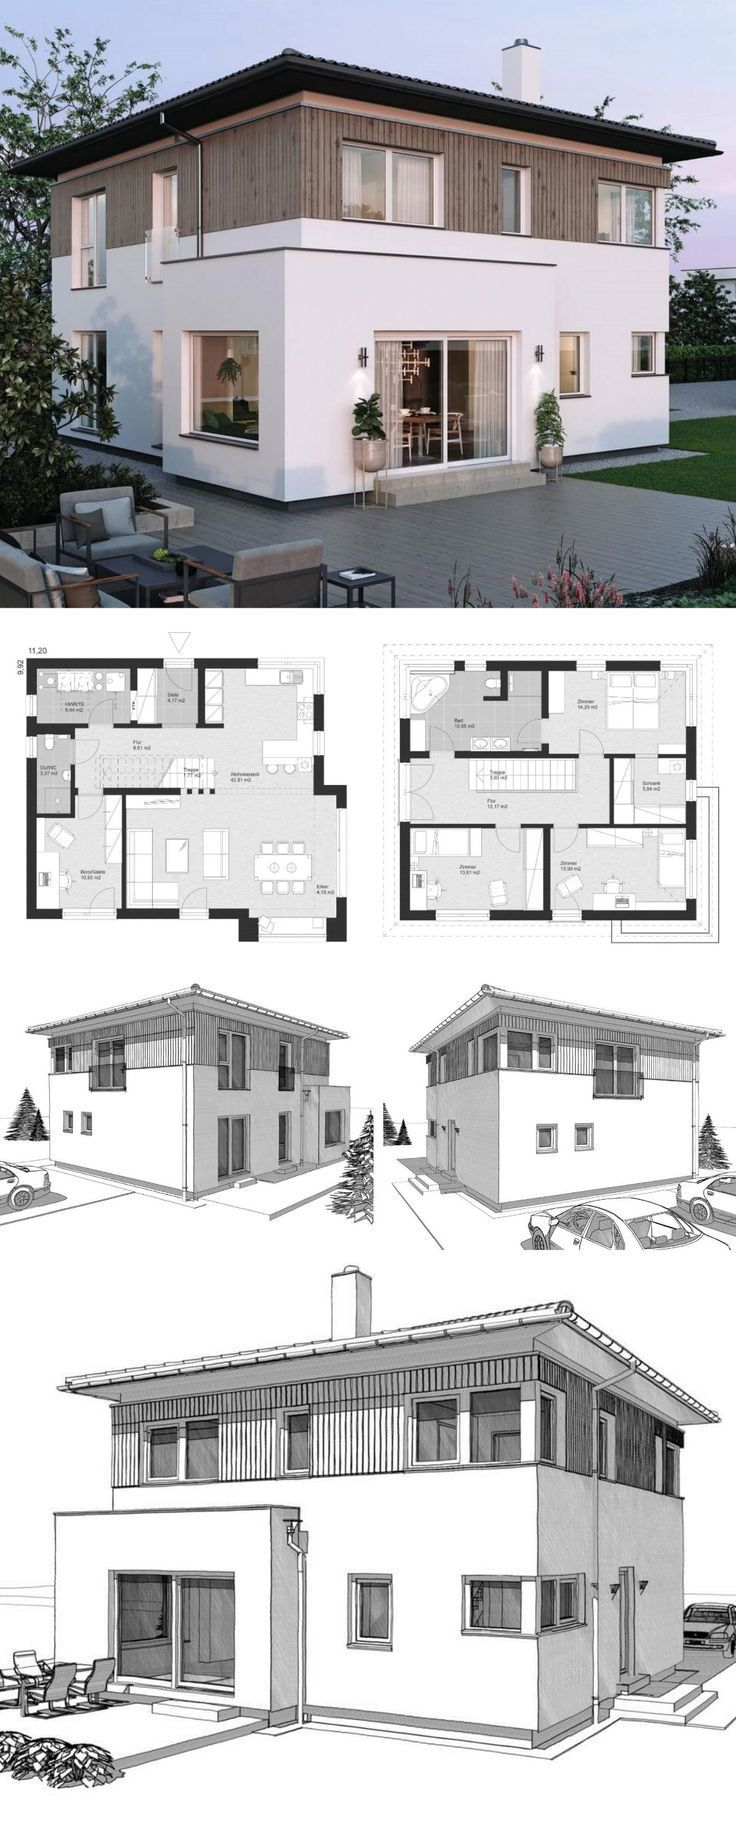 Arc fassade landhaus mit modern neubau stadtvilla walmdach for men in house design co  also rh pinterest